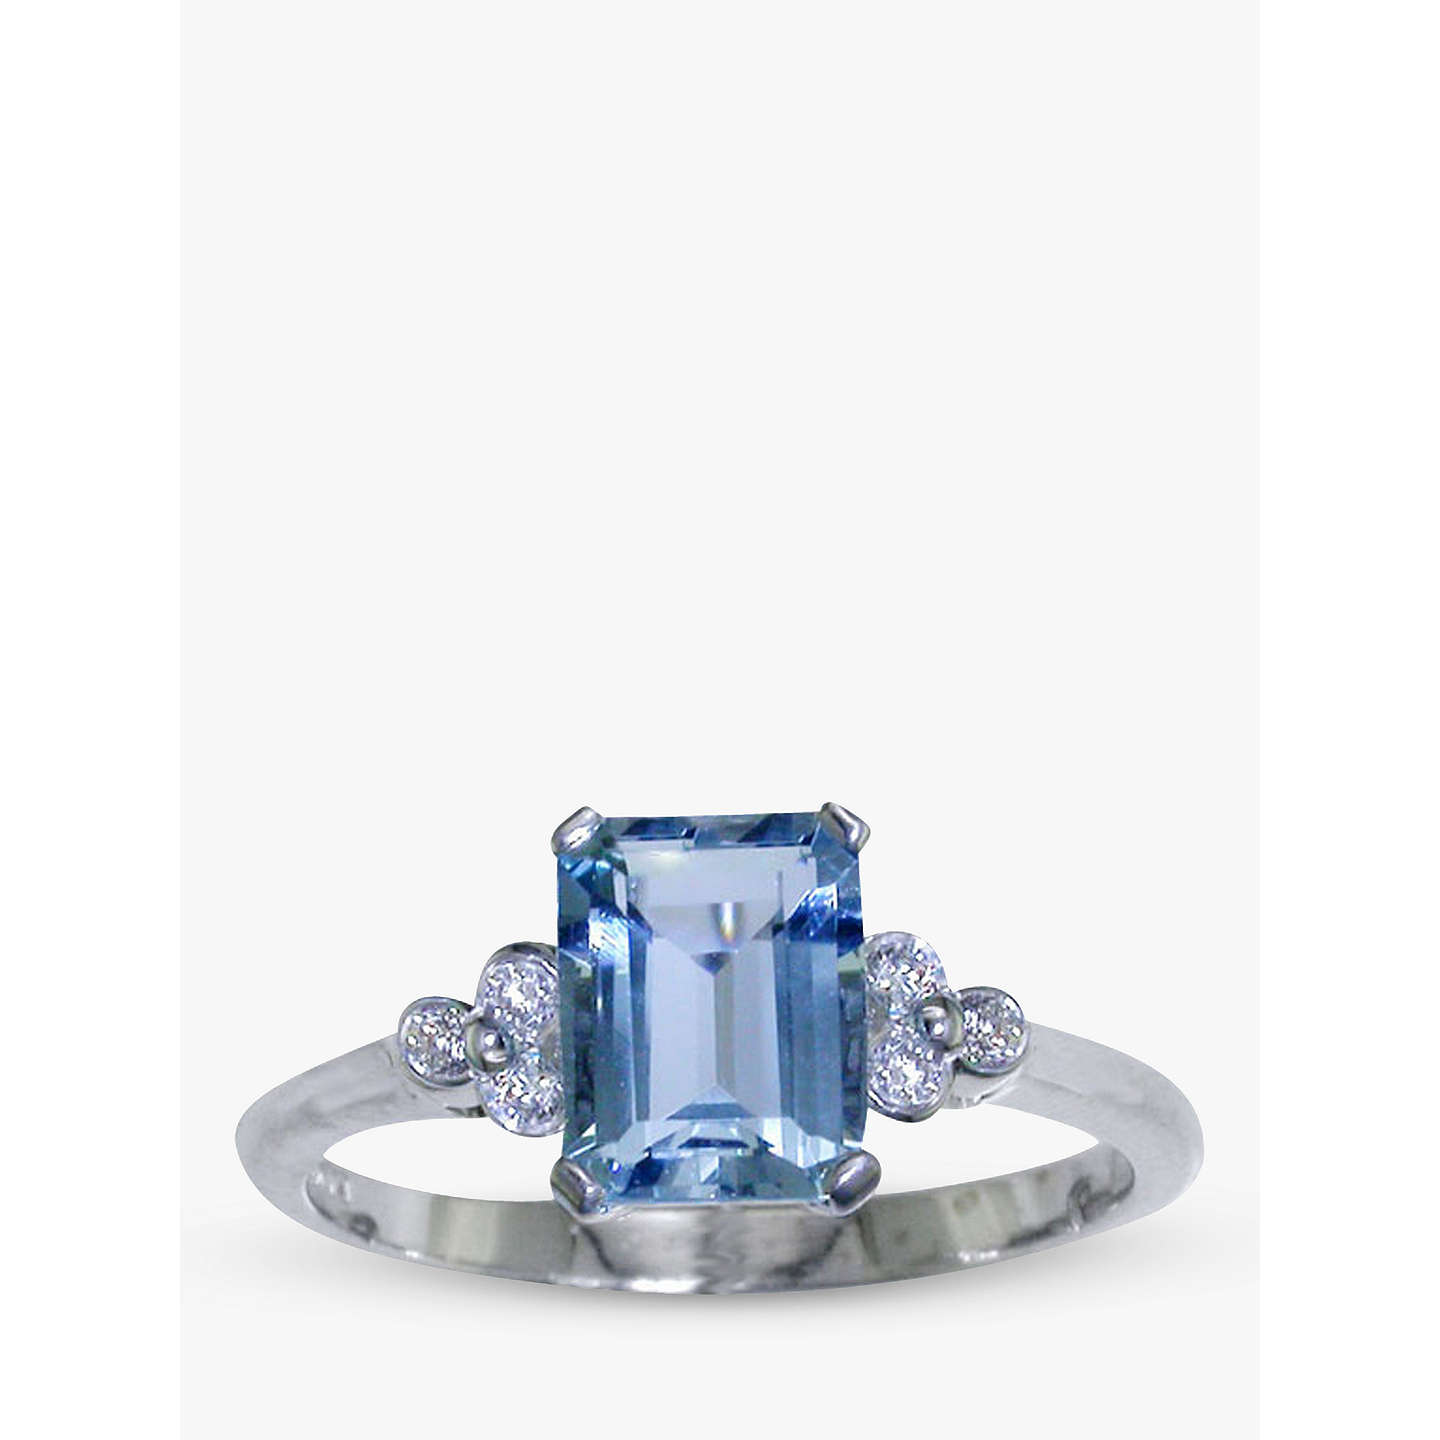 jewellery miniature product cicolini jodhpur aquamarine scale shop false the upscale alice crop subsampling ring petal